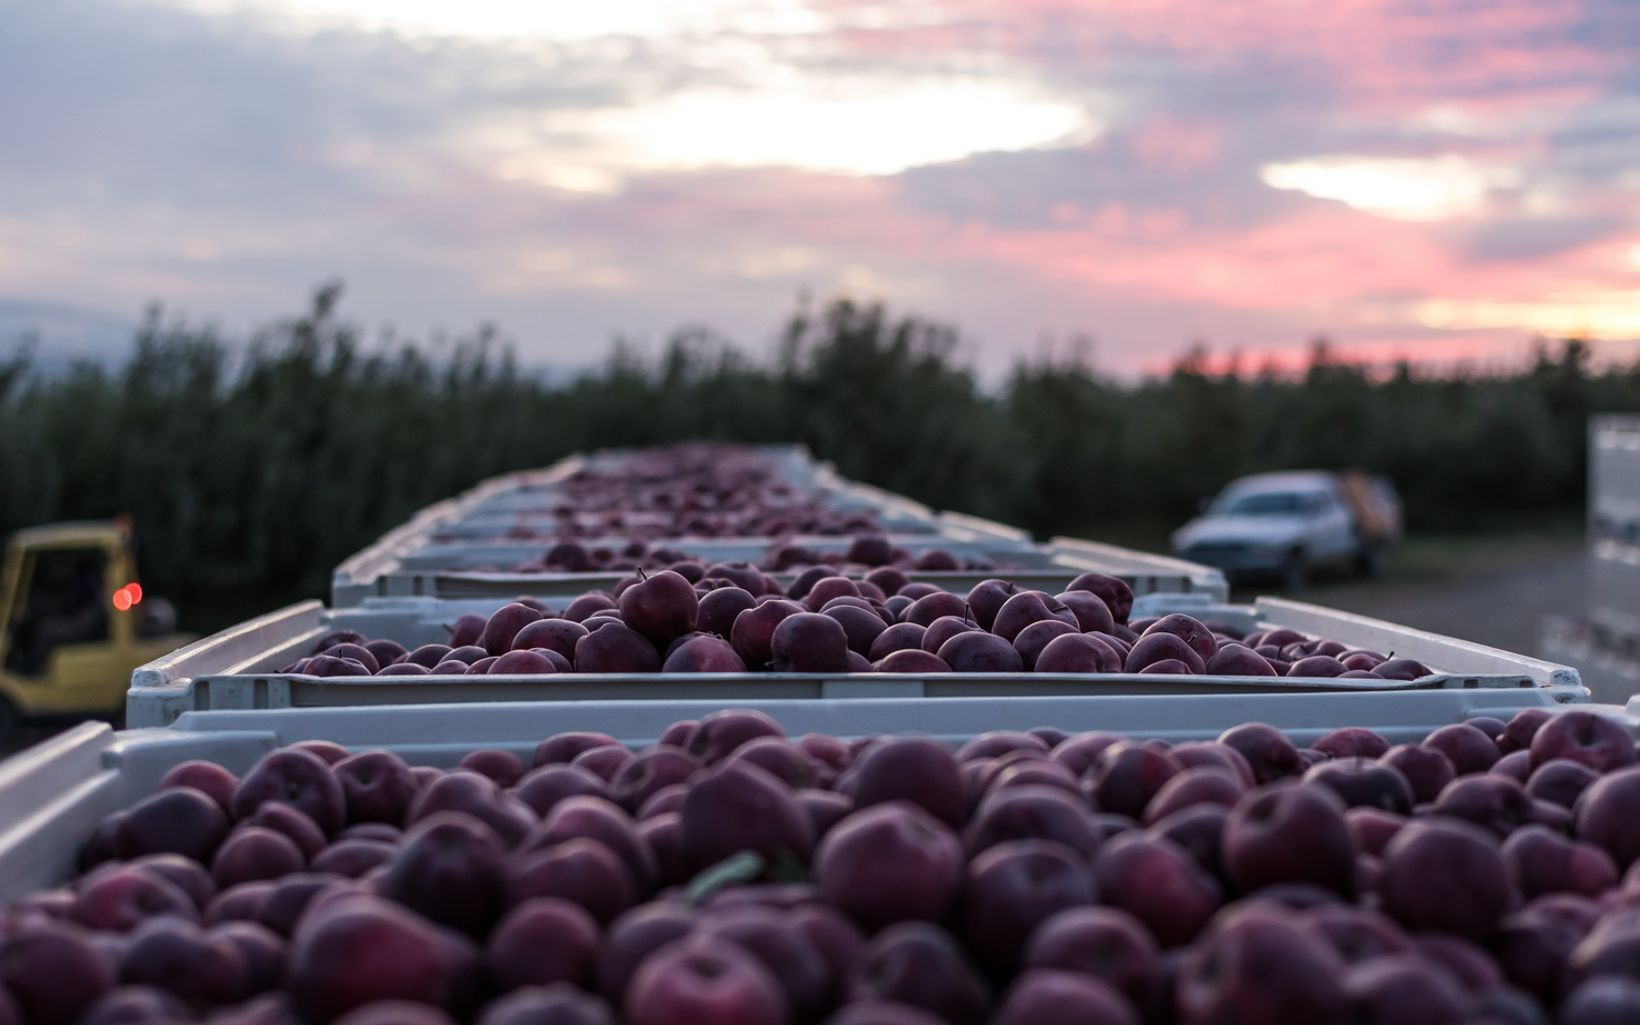 at T&T Orchards in Quincy employs about 50 workers each season, some of whom have returned for 20 years. Each harvester fills about 14,000 pounds of apple per day.